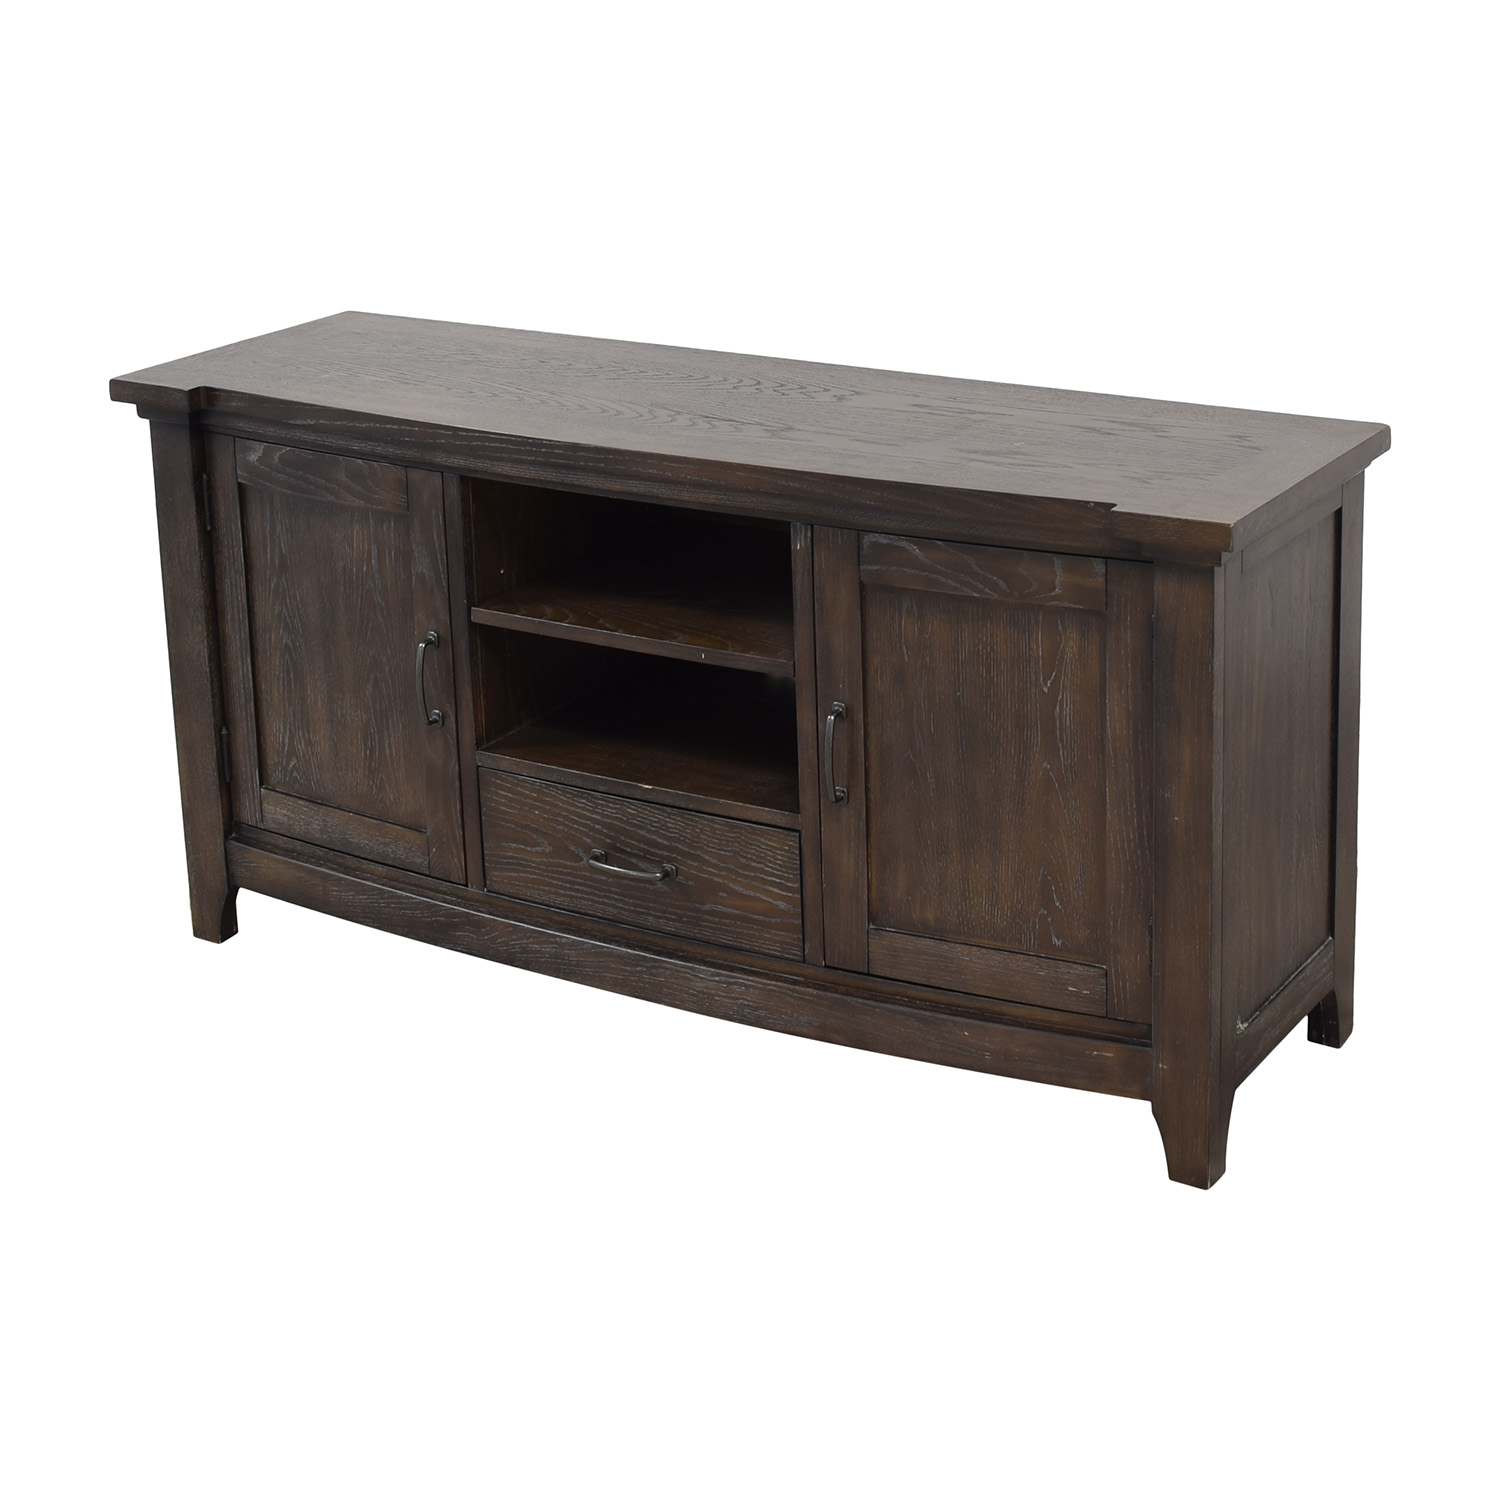 Broyhill Furniture Broyhill Furniture Media Stand dark brown